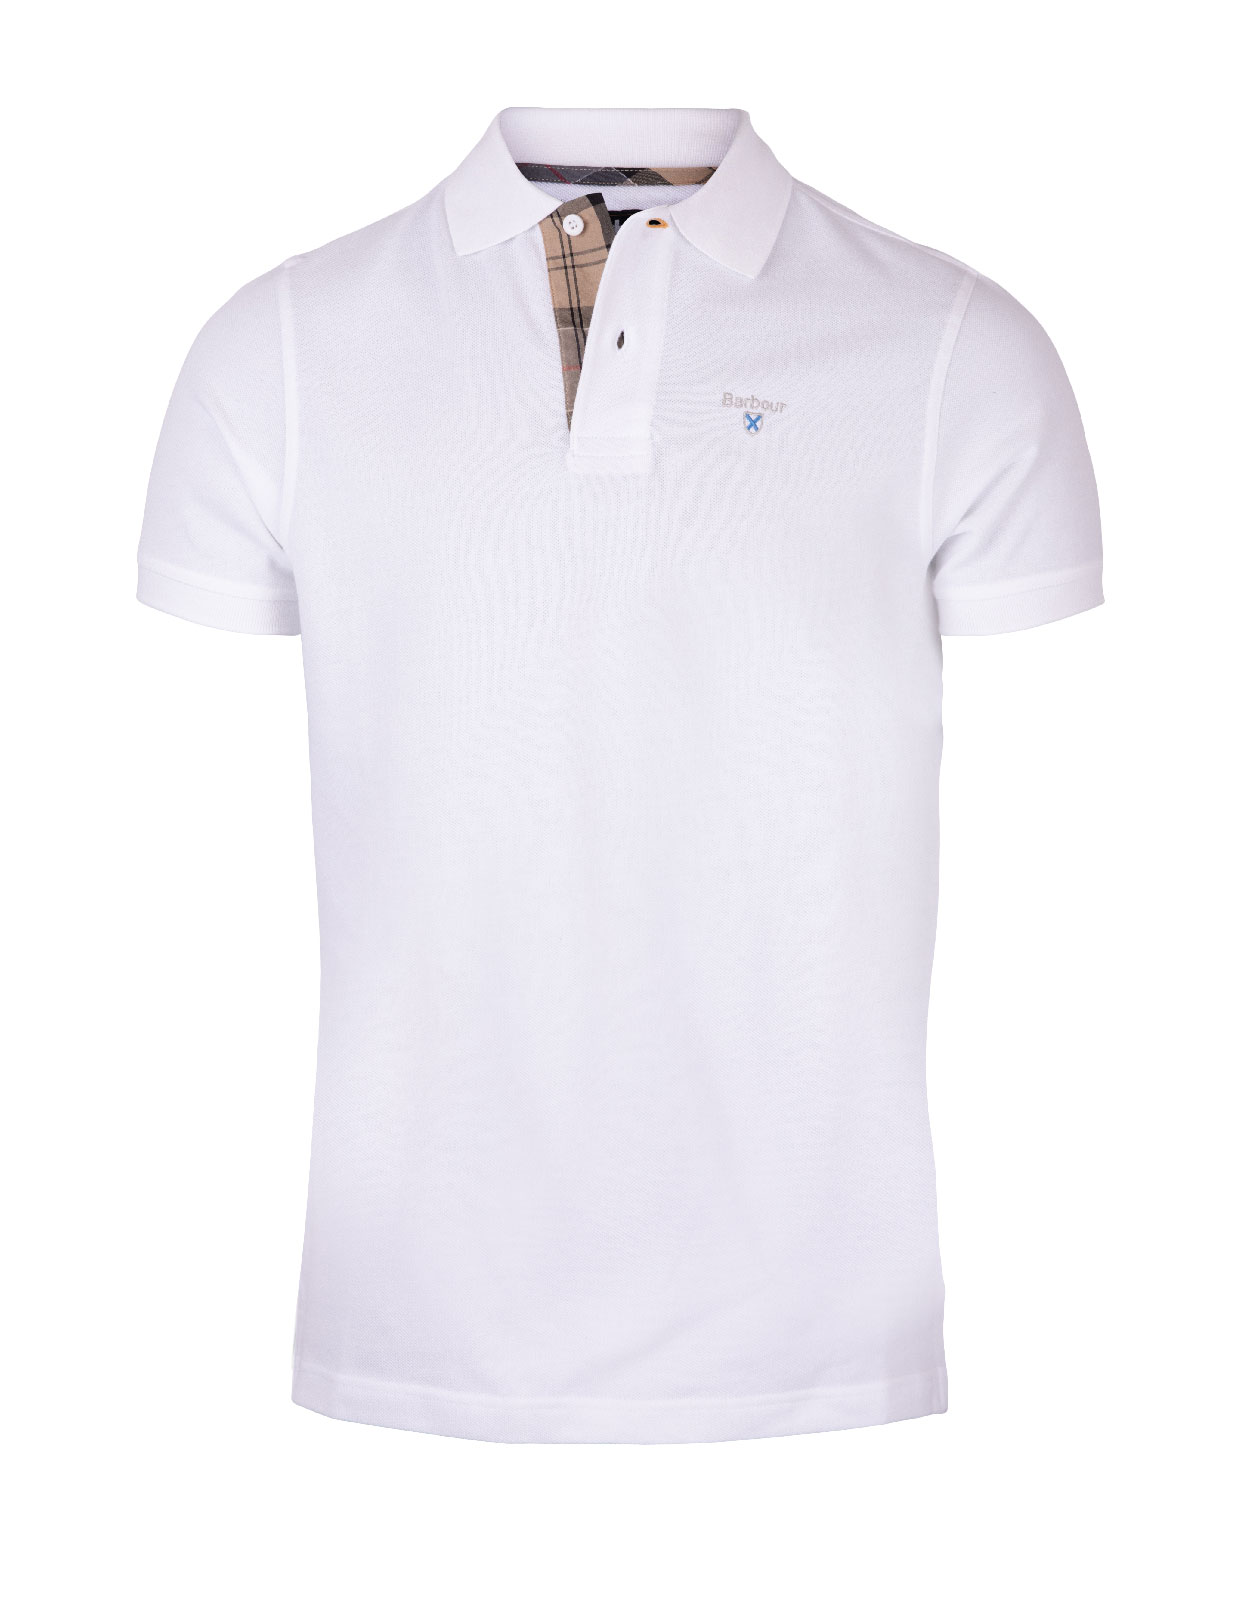 Barbour Tartan Pique Polo Shirt WH White/Dress